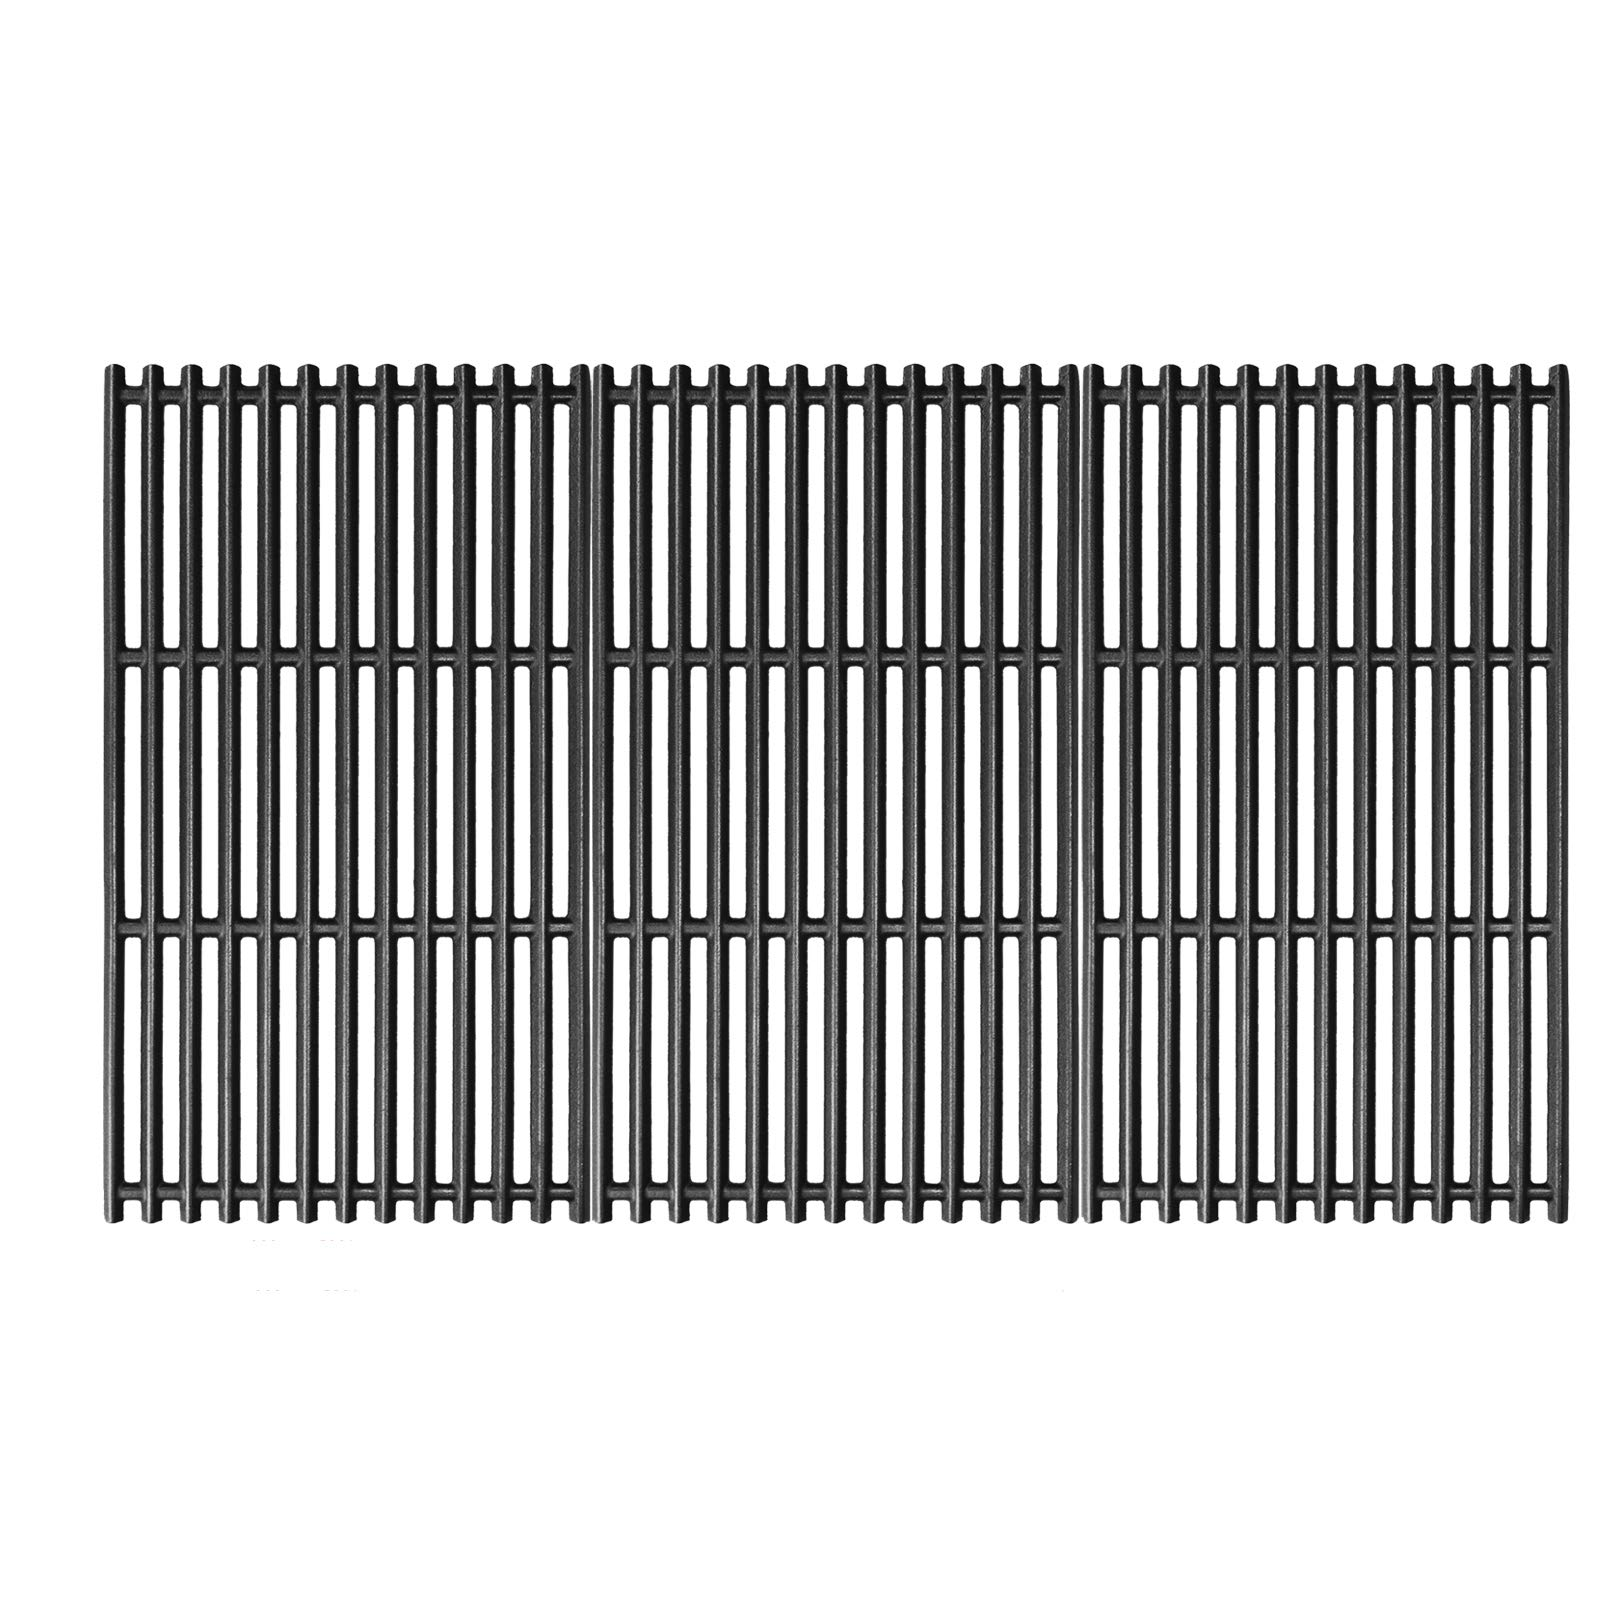 Utheer 17 inch Cooking Grid Grate for Gas Grill Model for Charbroil 463242715, 463242716, 463276016, 466242715, 466242815, G533-0009-W1, Lowe's 606682, Walmart 555179228 Gas Grills, Matte Cast Iron by Utheer